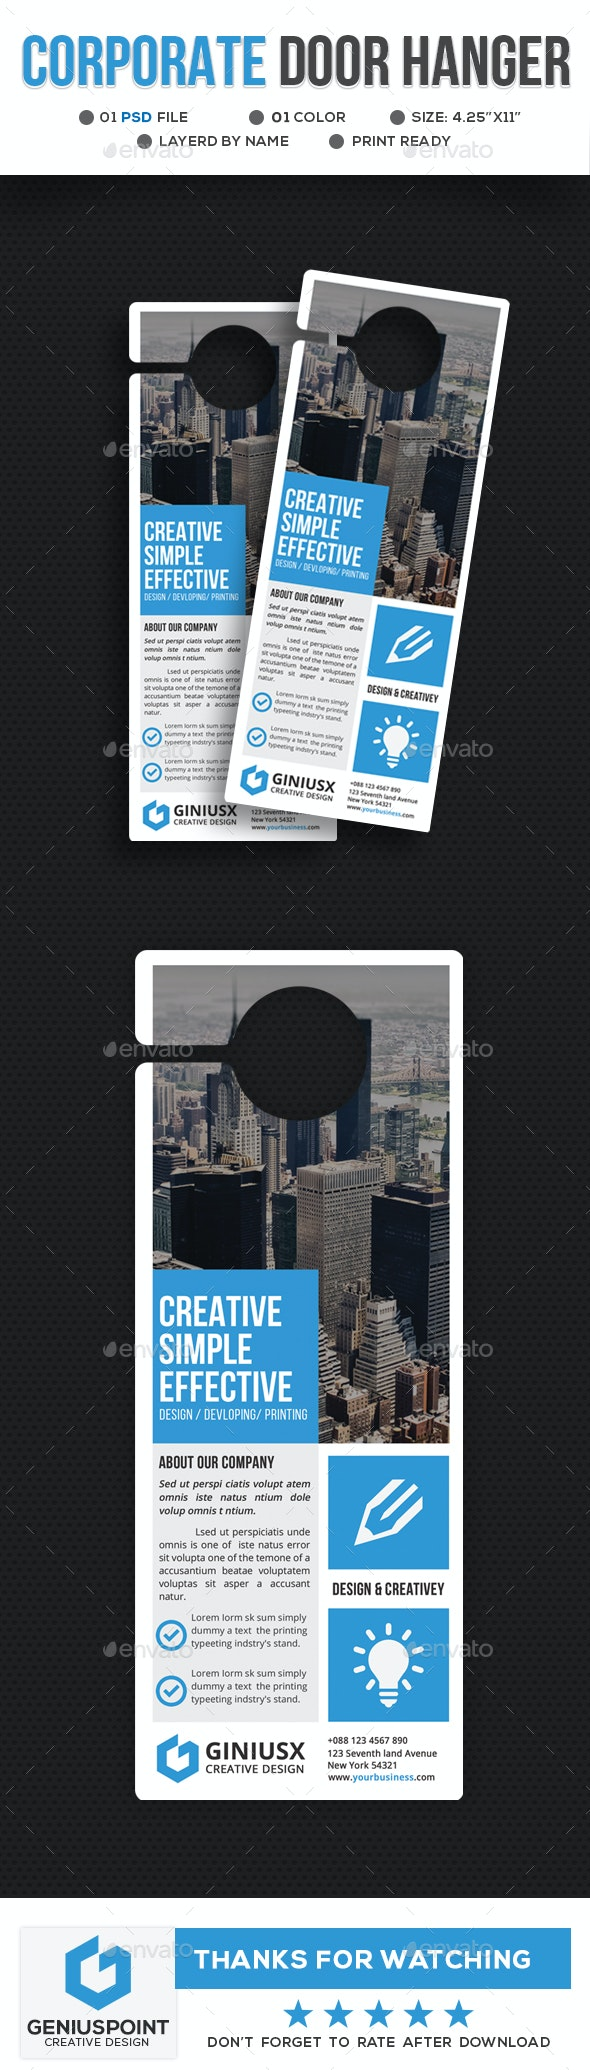 Corporate Door Hanger Template